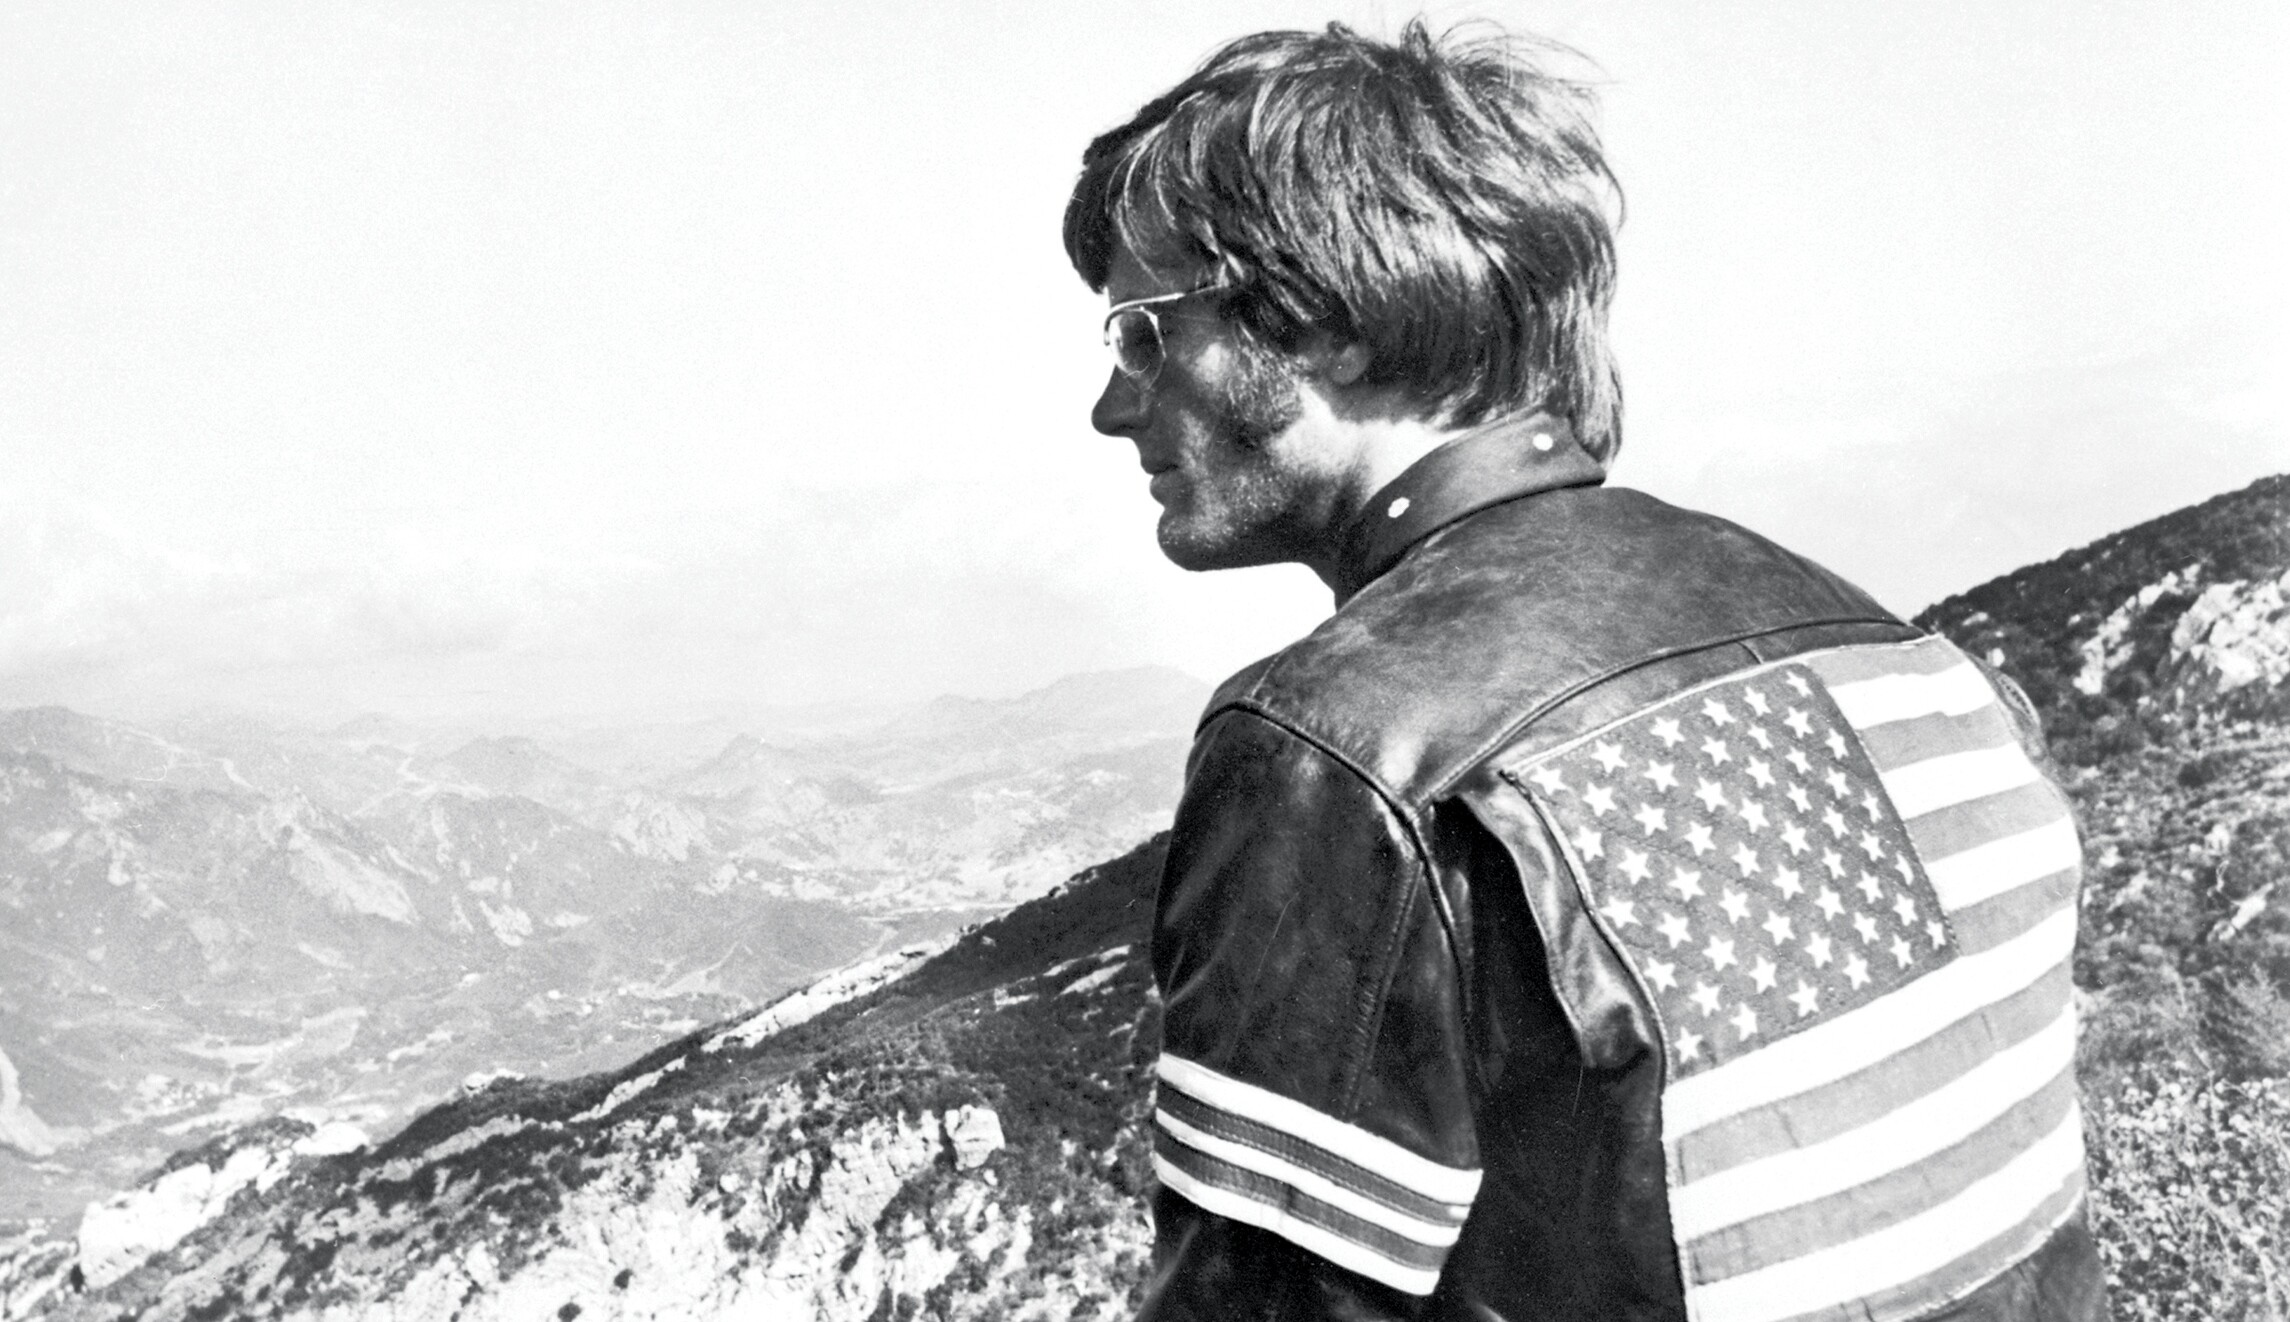 Obituary: Peter Fonda, 1940-2019